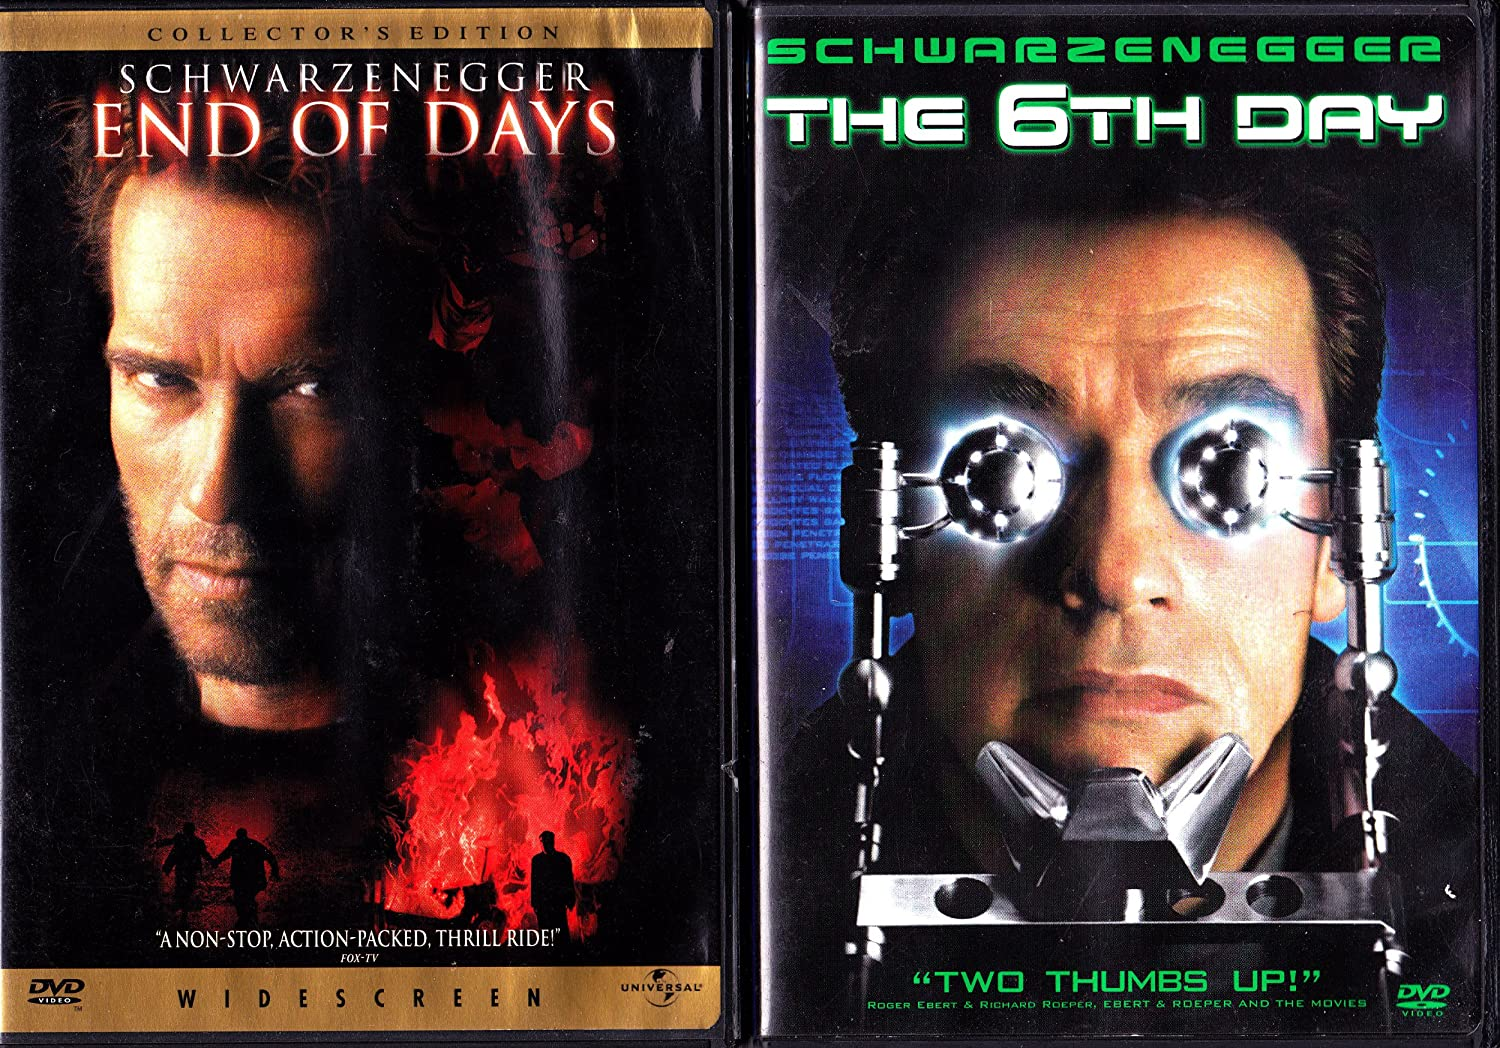 Amazon.com: End of Days/ The 6th Day 2 DVD Pack Arnold ...